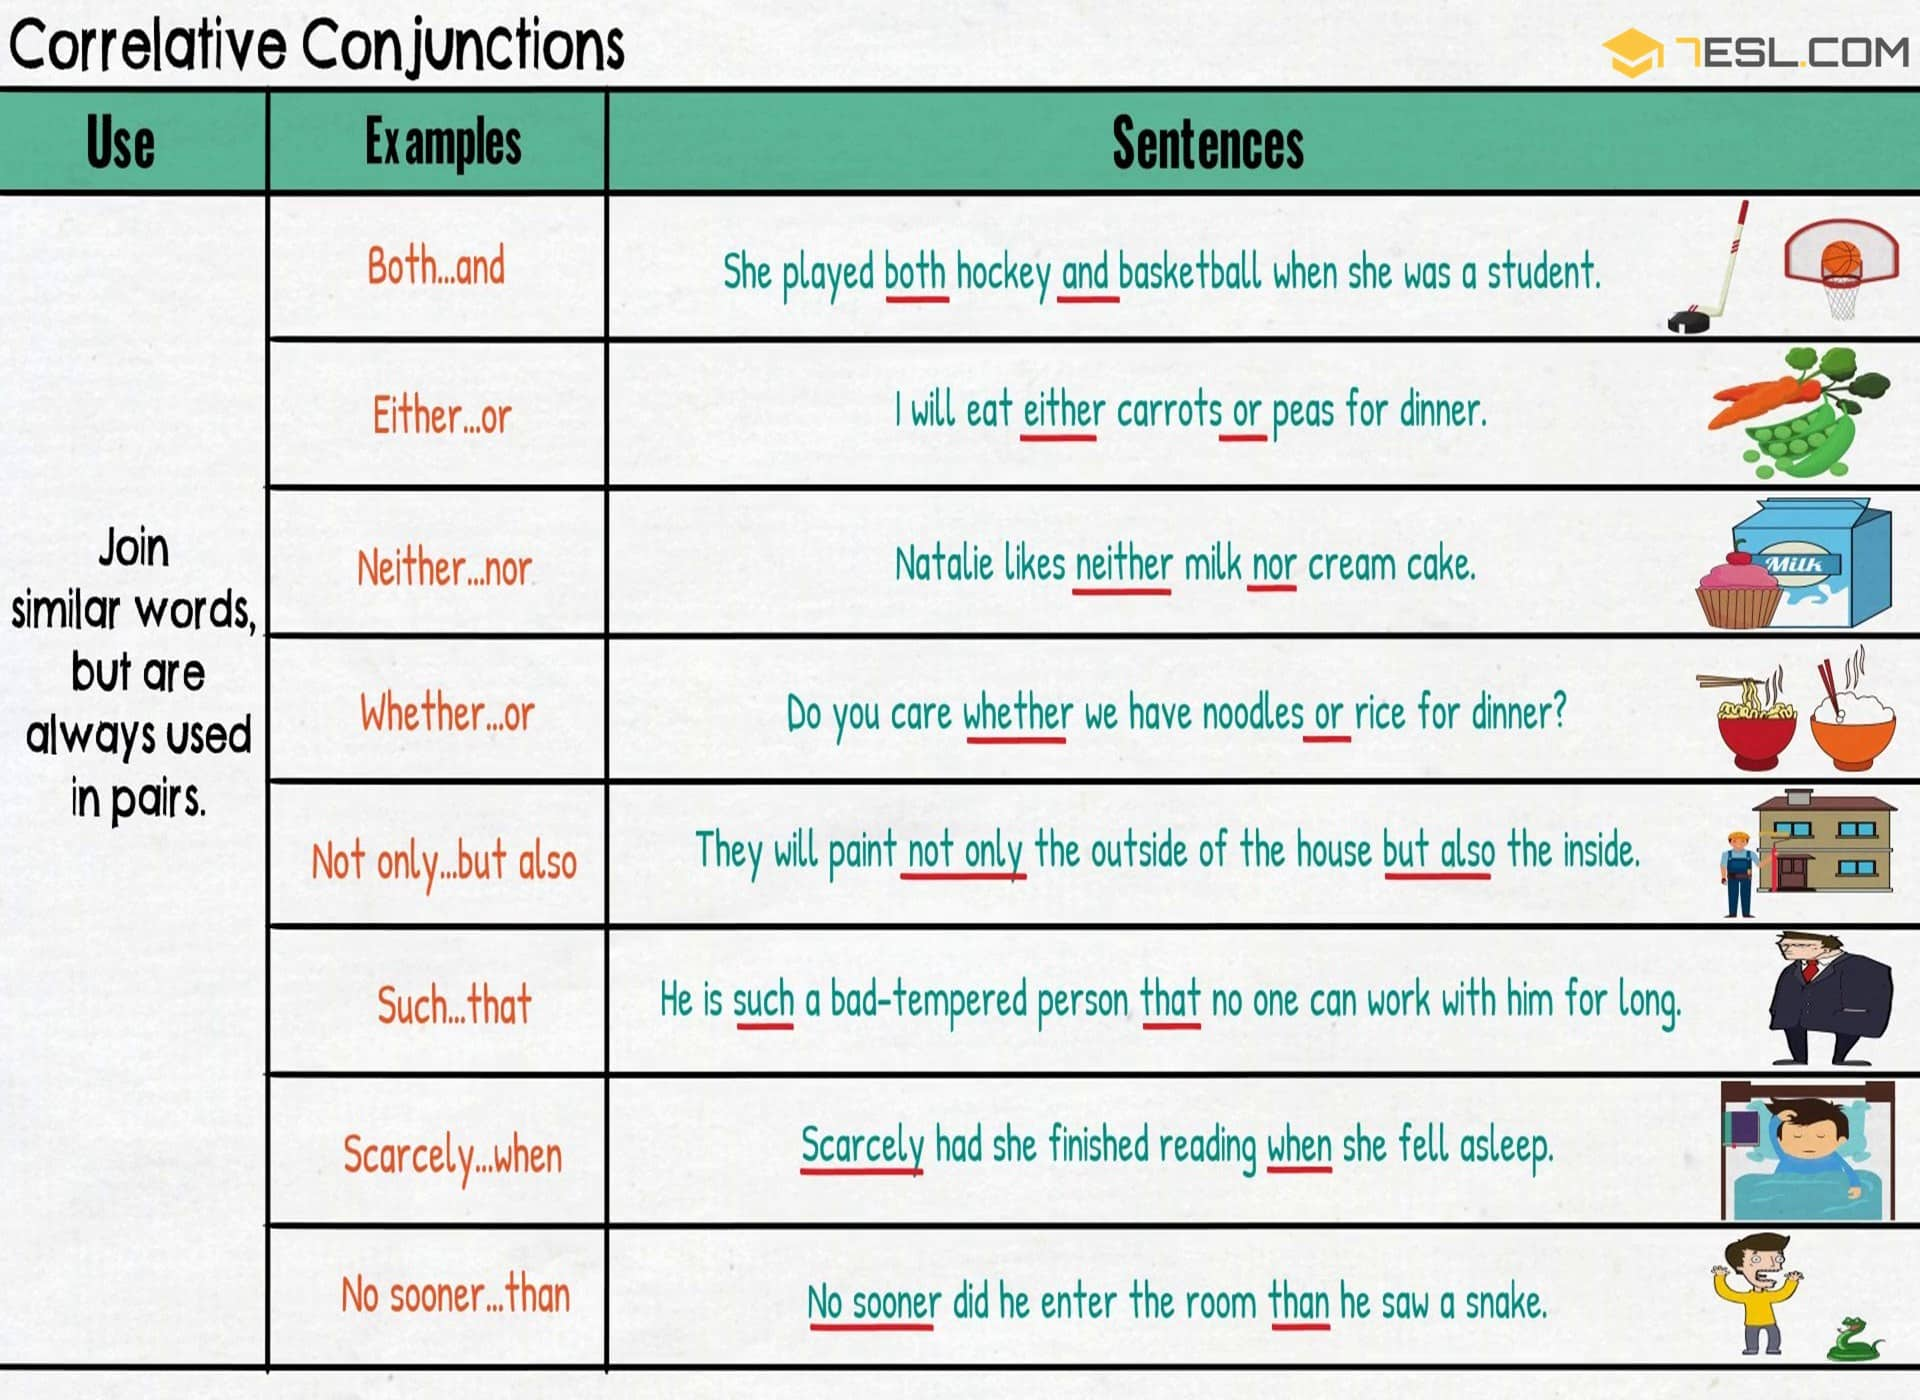 Correlative Conjunctions | Either/Or, Rather/Than, Both/And...